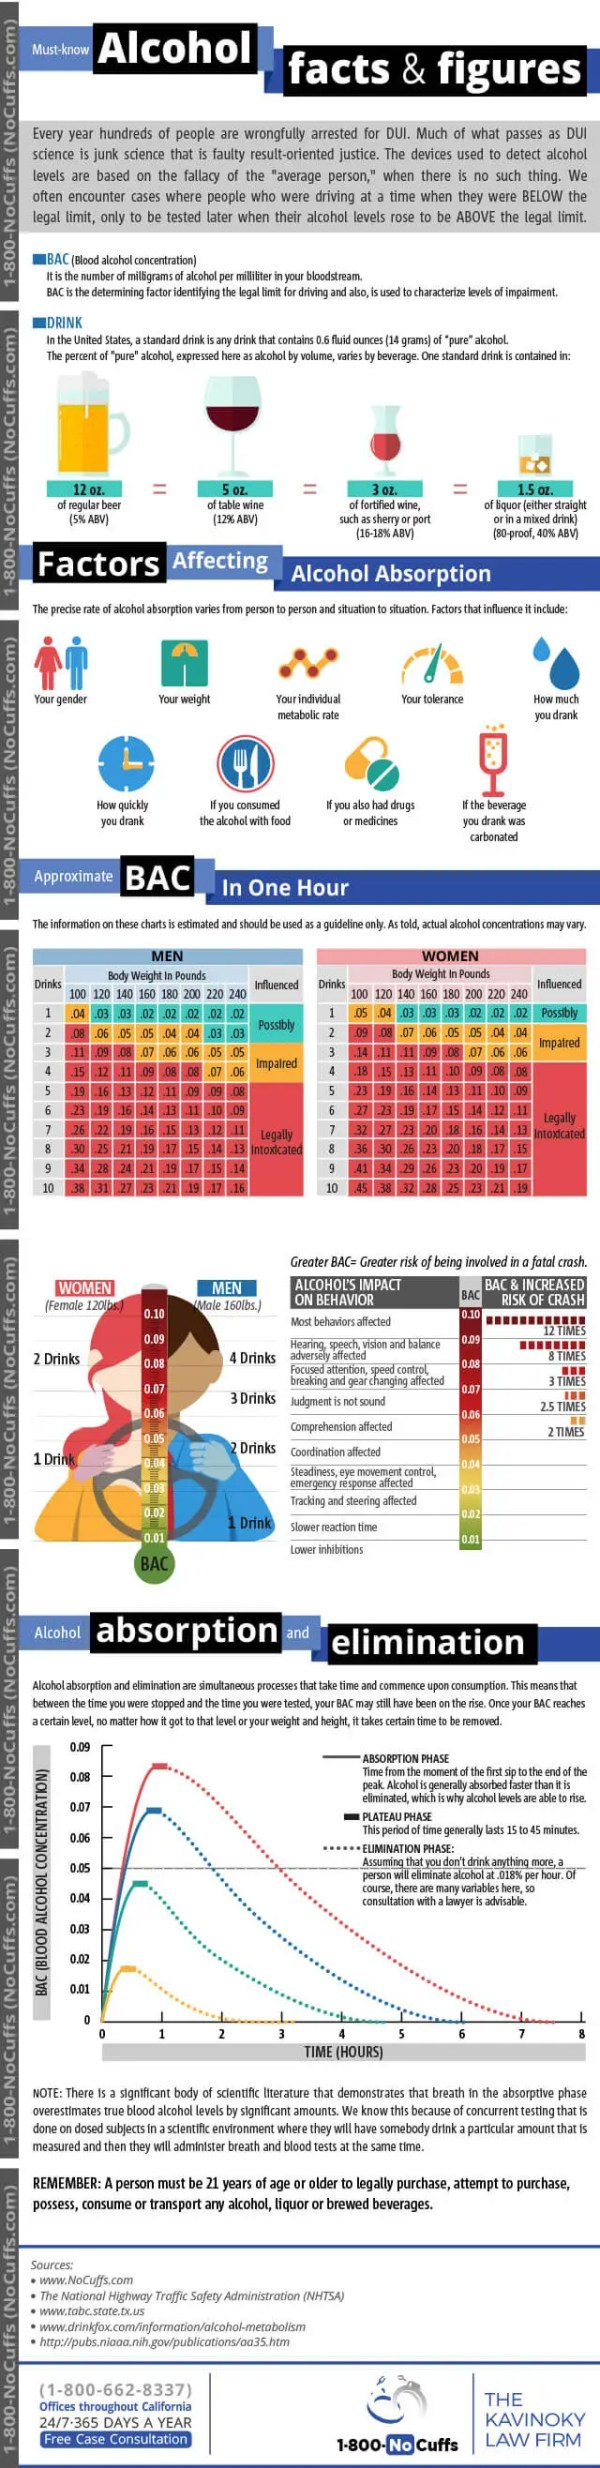 Alcohol-Levels-Changing-Over-Time-infographic